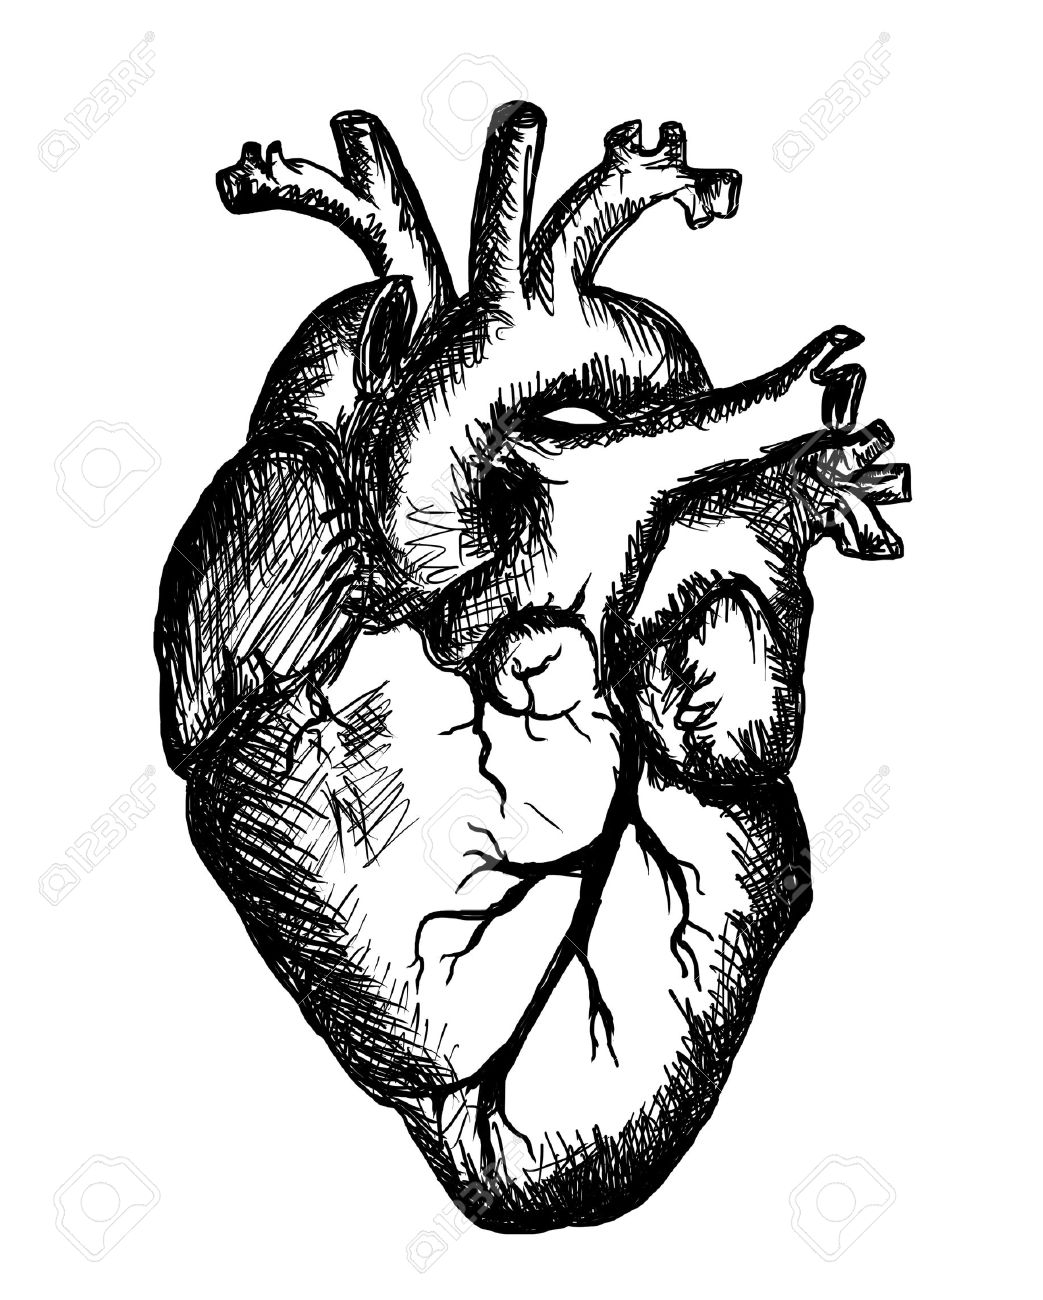 Blank label human heart clipart black and white picture free Human Heart Clipart Black And White | Free download best Human Heart ... picture free